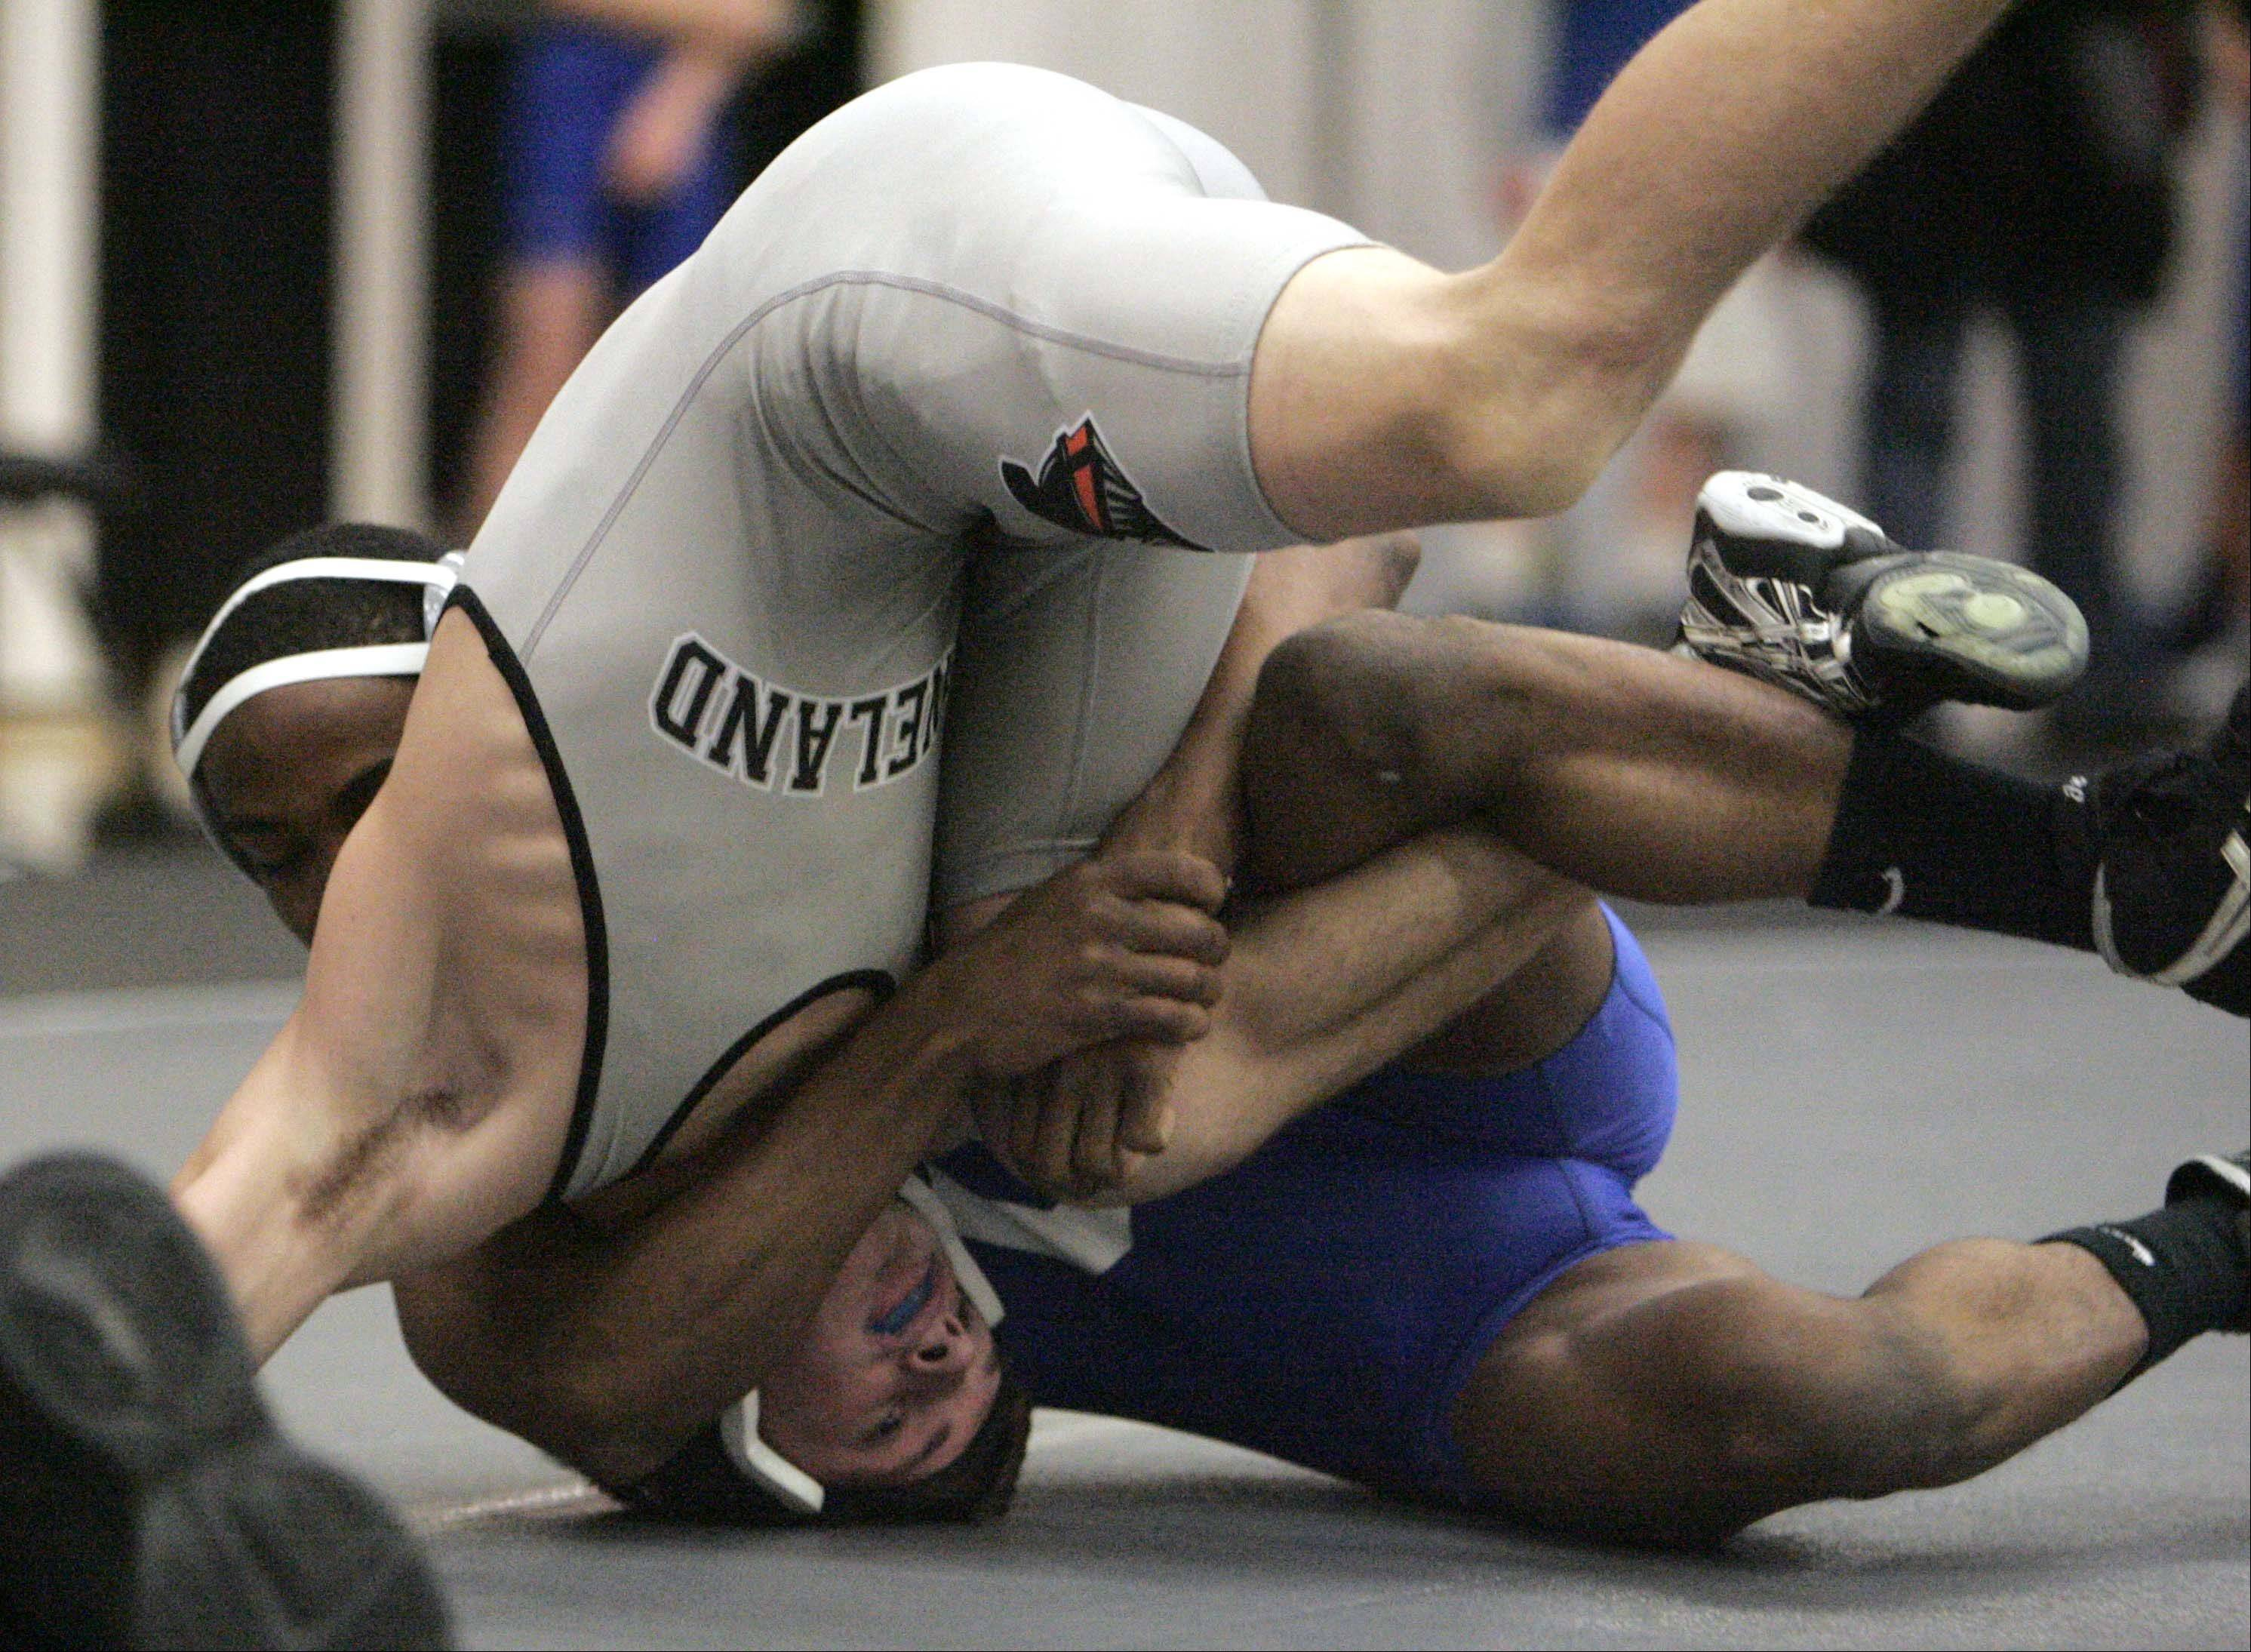 Kanelands's Dane Goodenuf wrestles Geneva's Keehan Freeman at 126 pounds during the Kaneland wrestling quad at Saturday December 15, 2012. Goodenuf won the match.